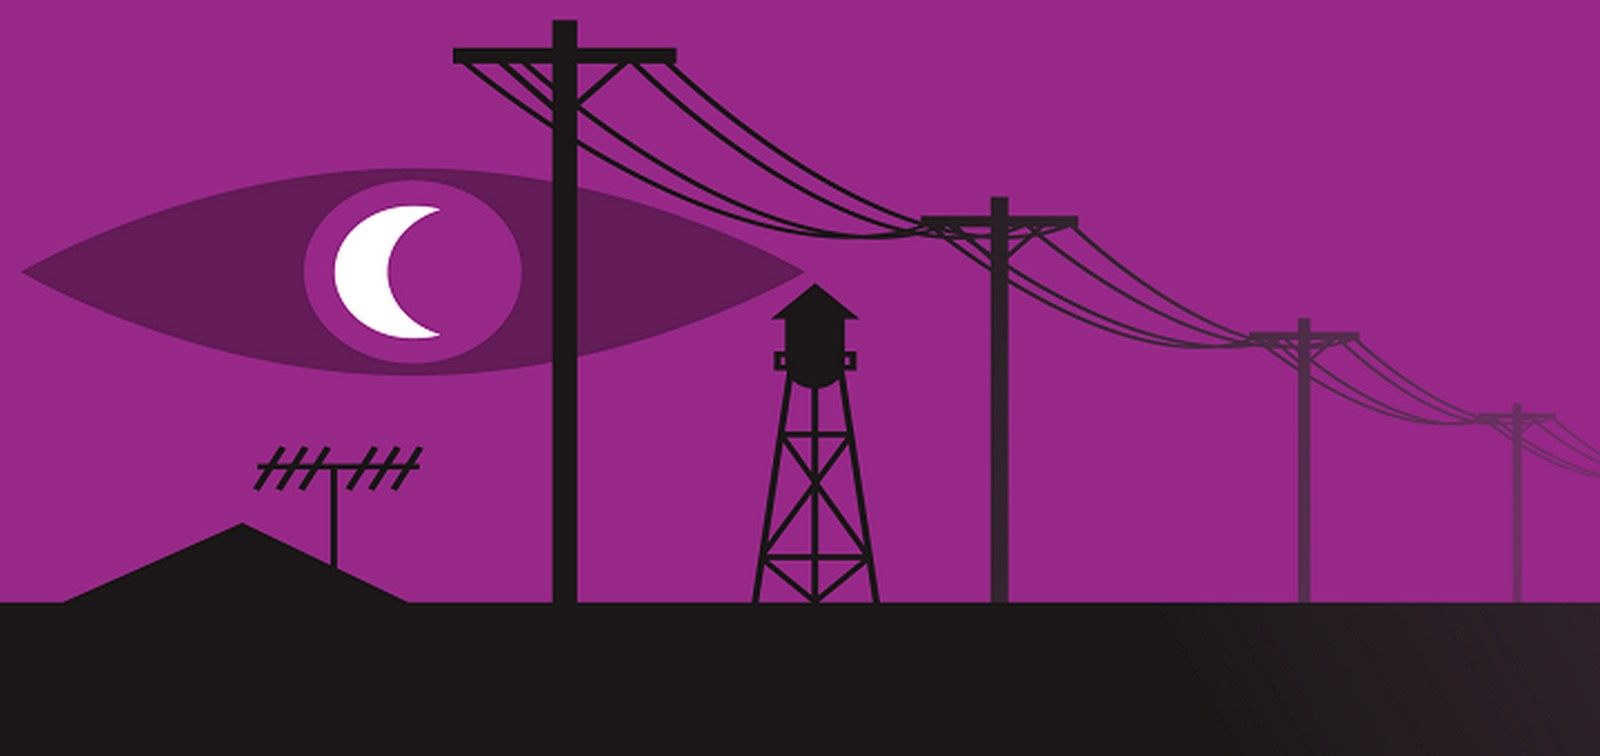 [Critique Roman] Bienvenue à Night Vale — Joseph Fink et Jeffrey Cranor